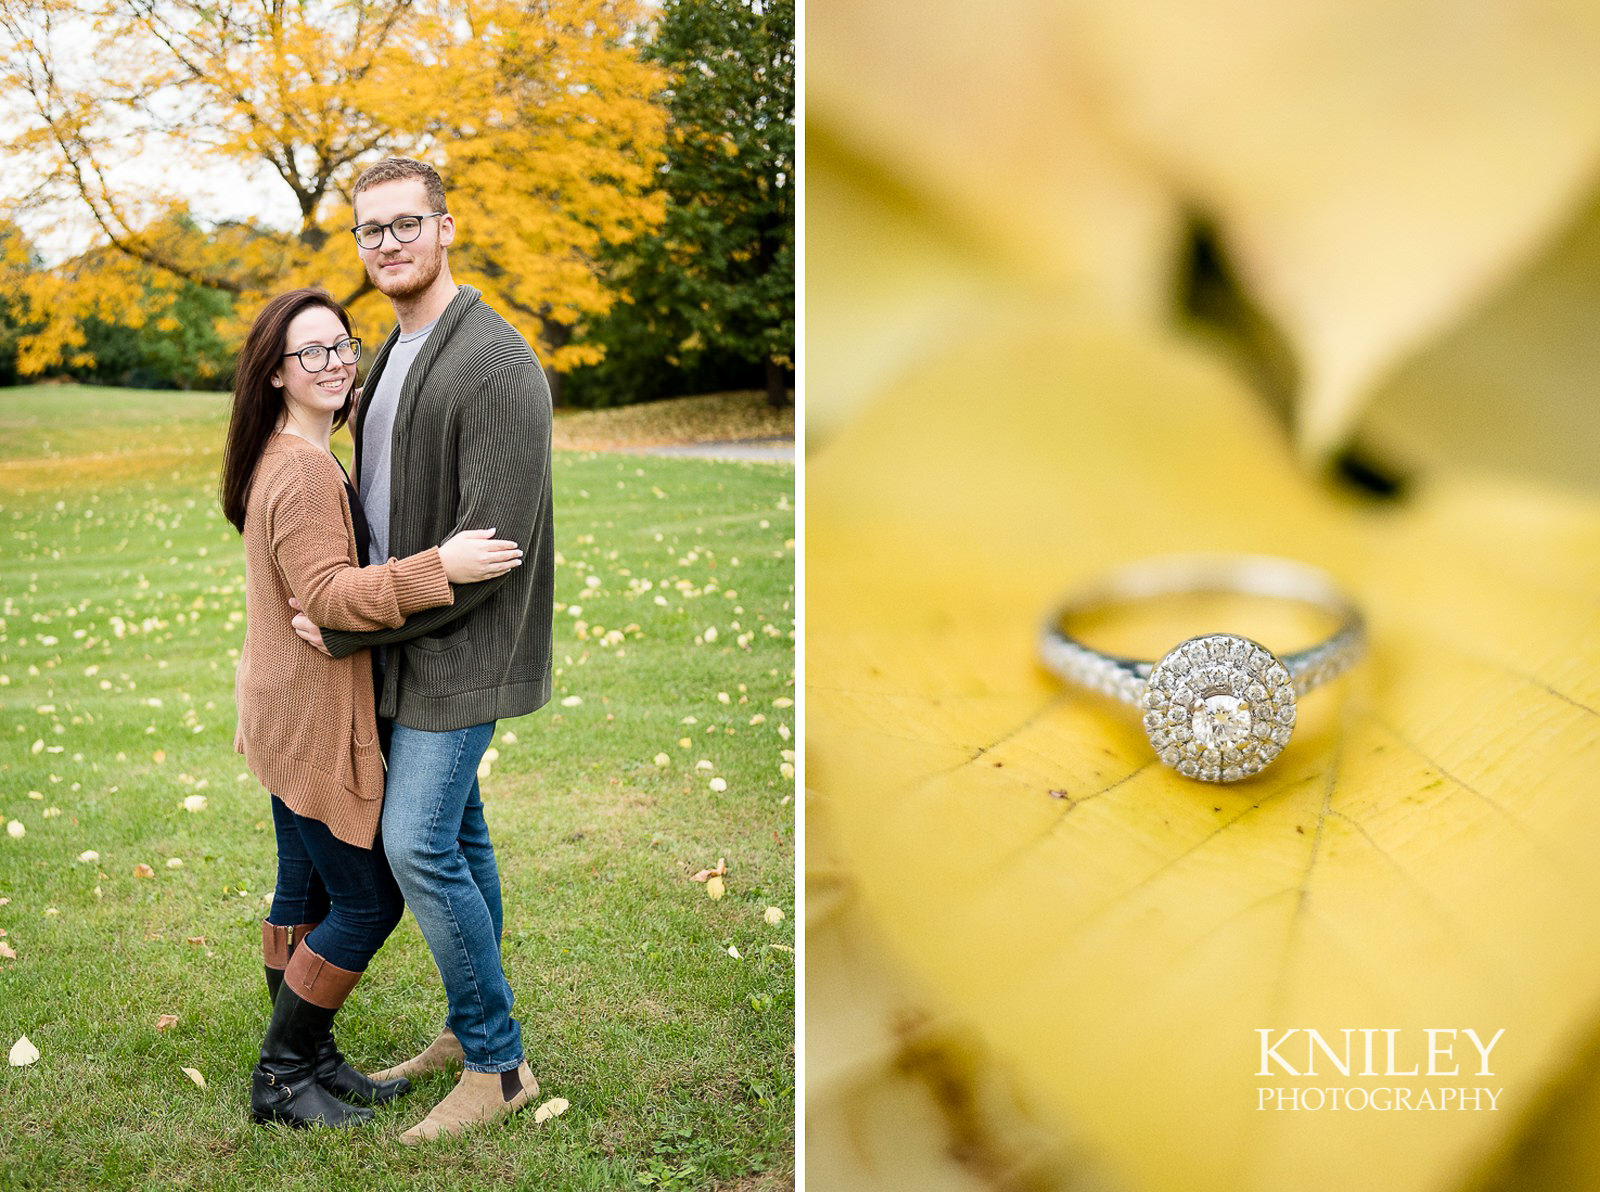 Highland Park Fall Engagement Session - Rochester NY - collage 10.jpg